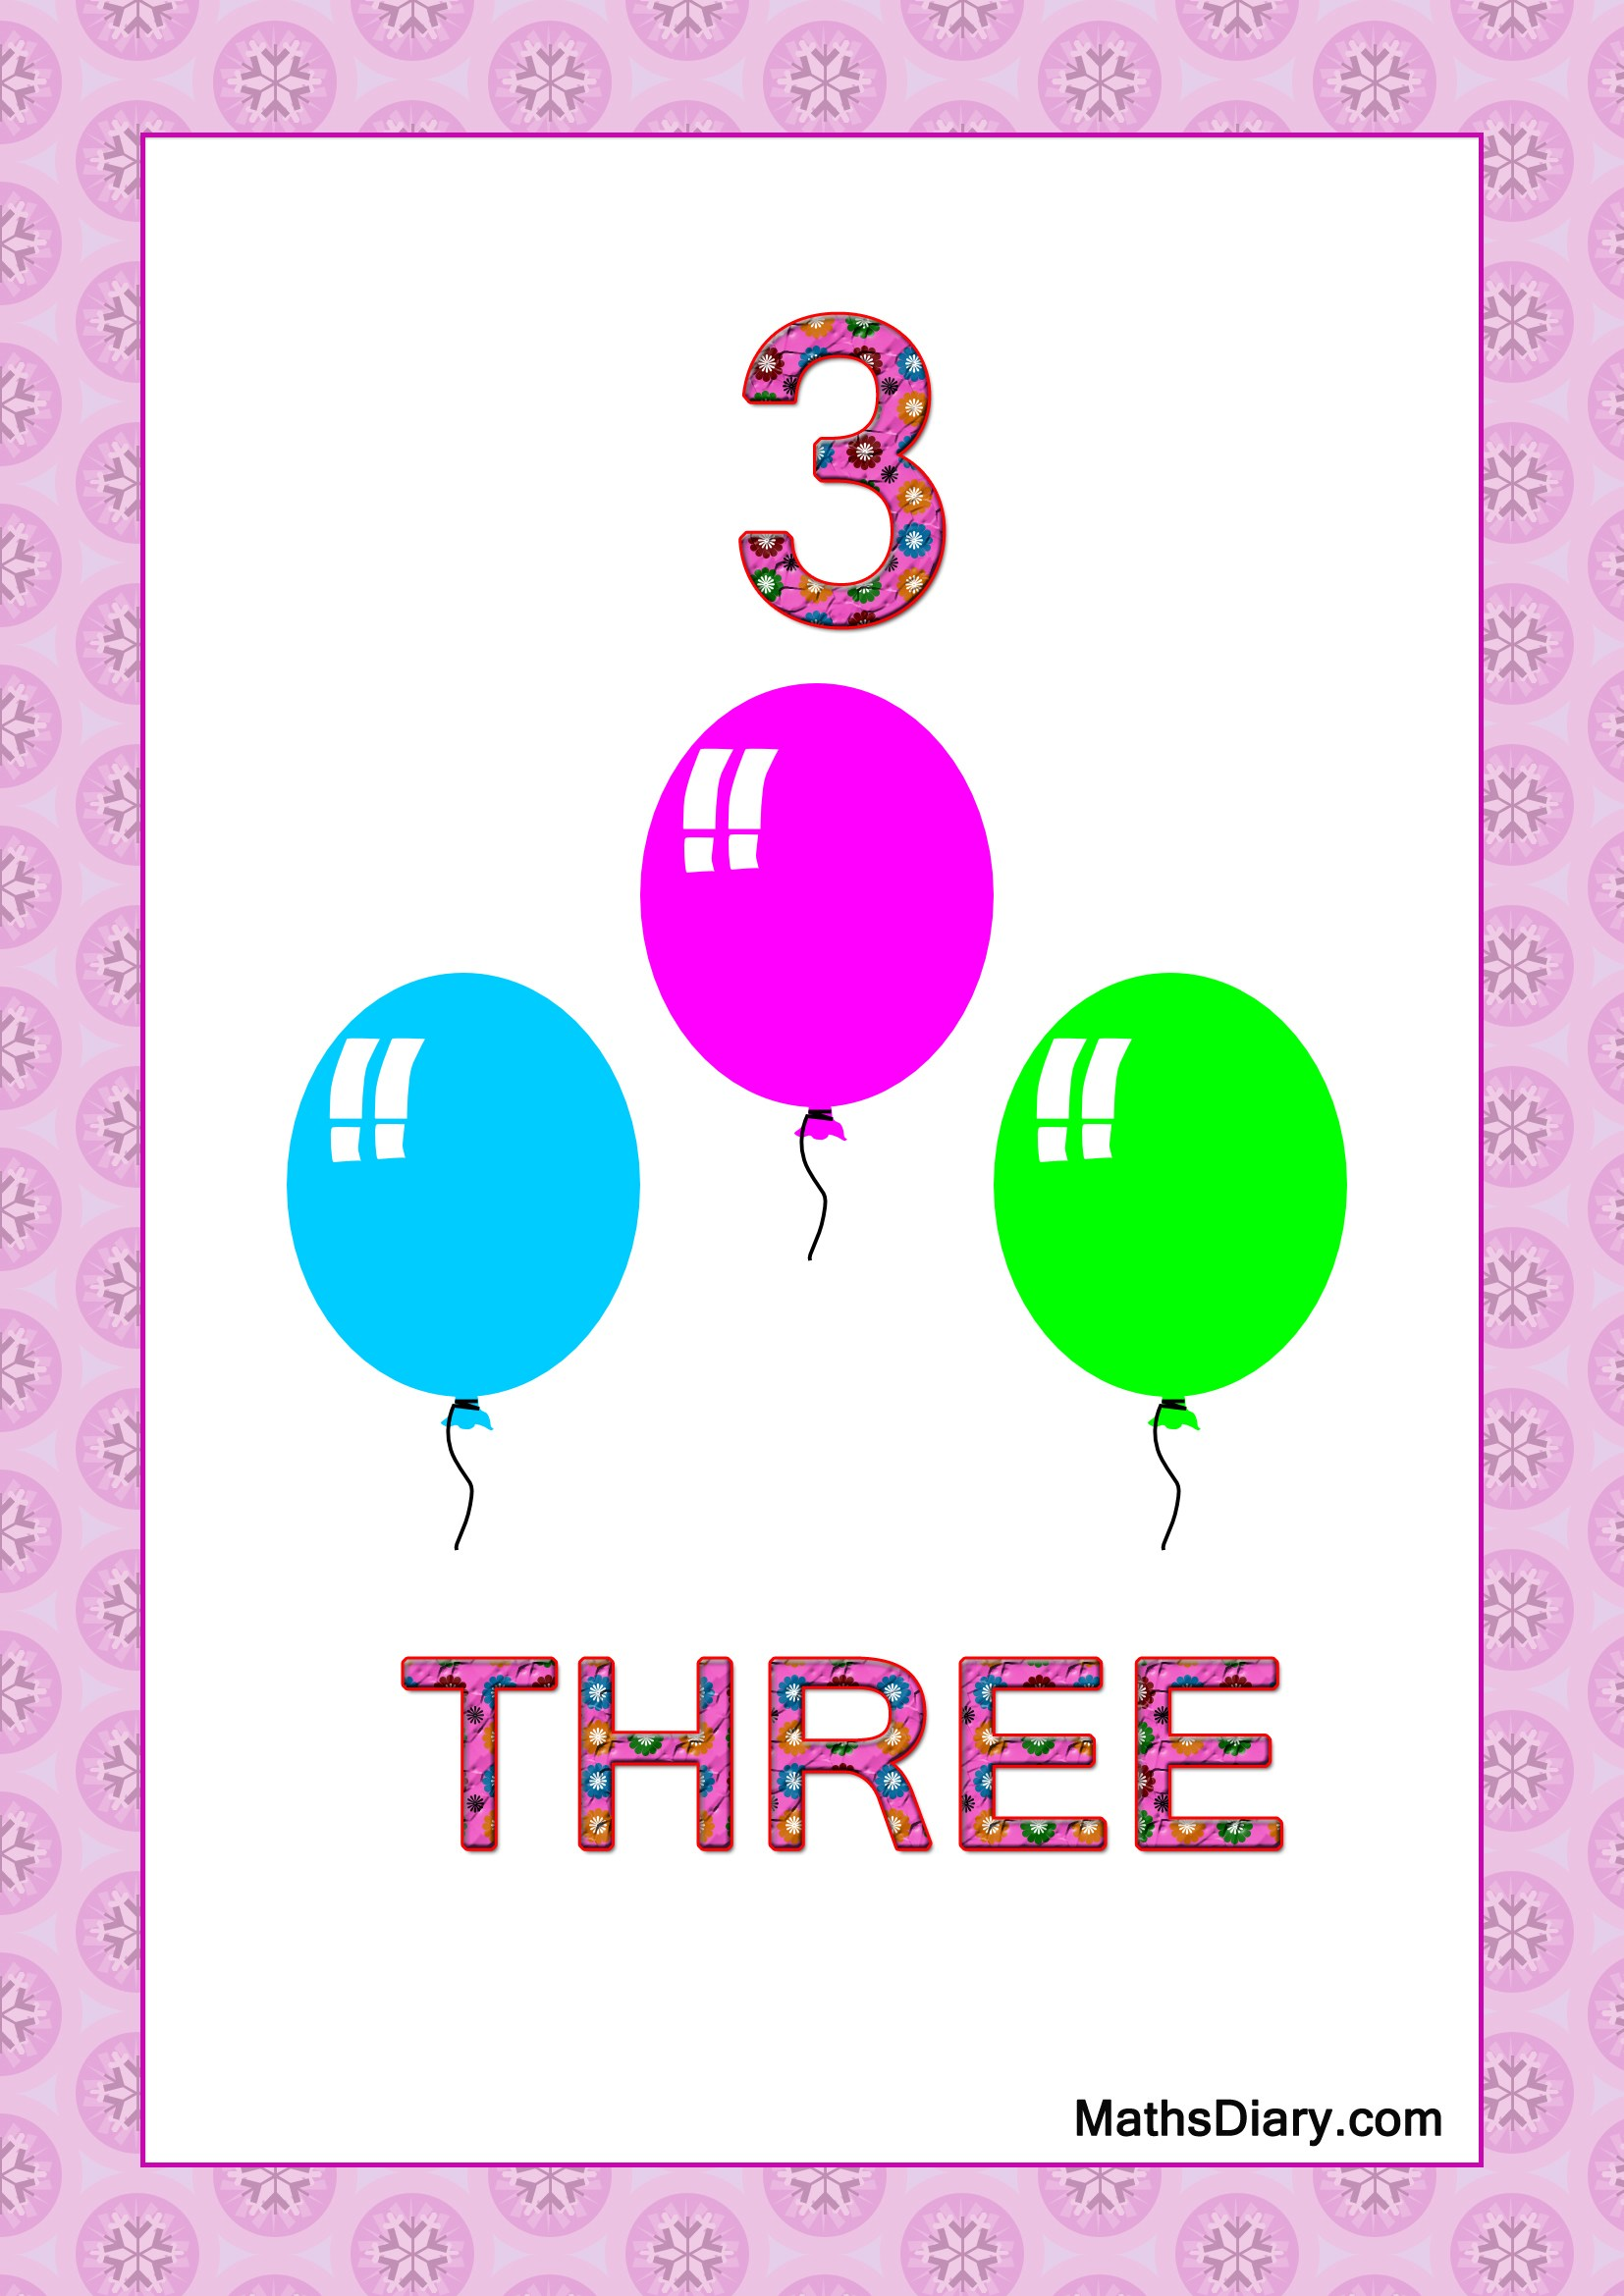 Uncategorized Maths Level 2 Worksheets learning counting and recognition of number 3 level 2 balloons